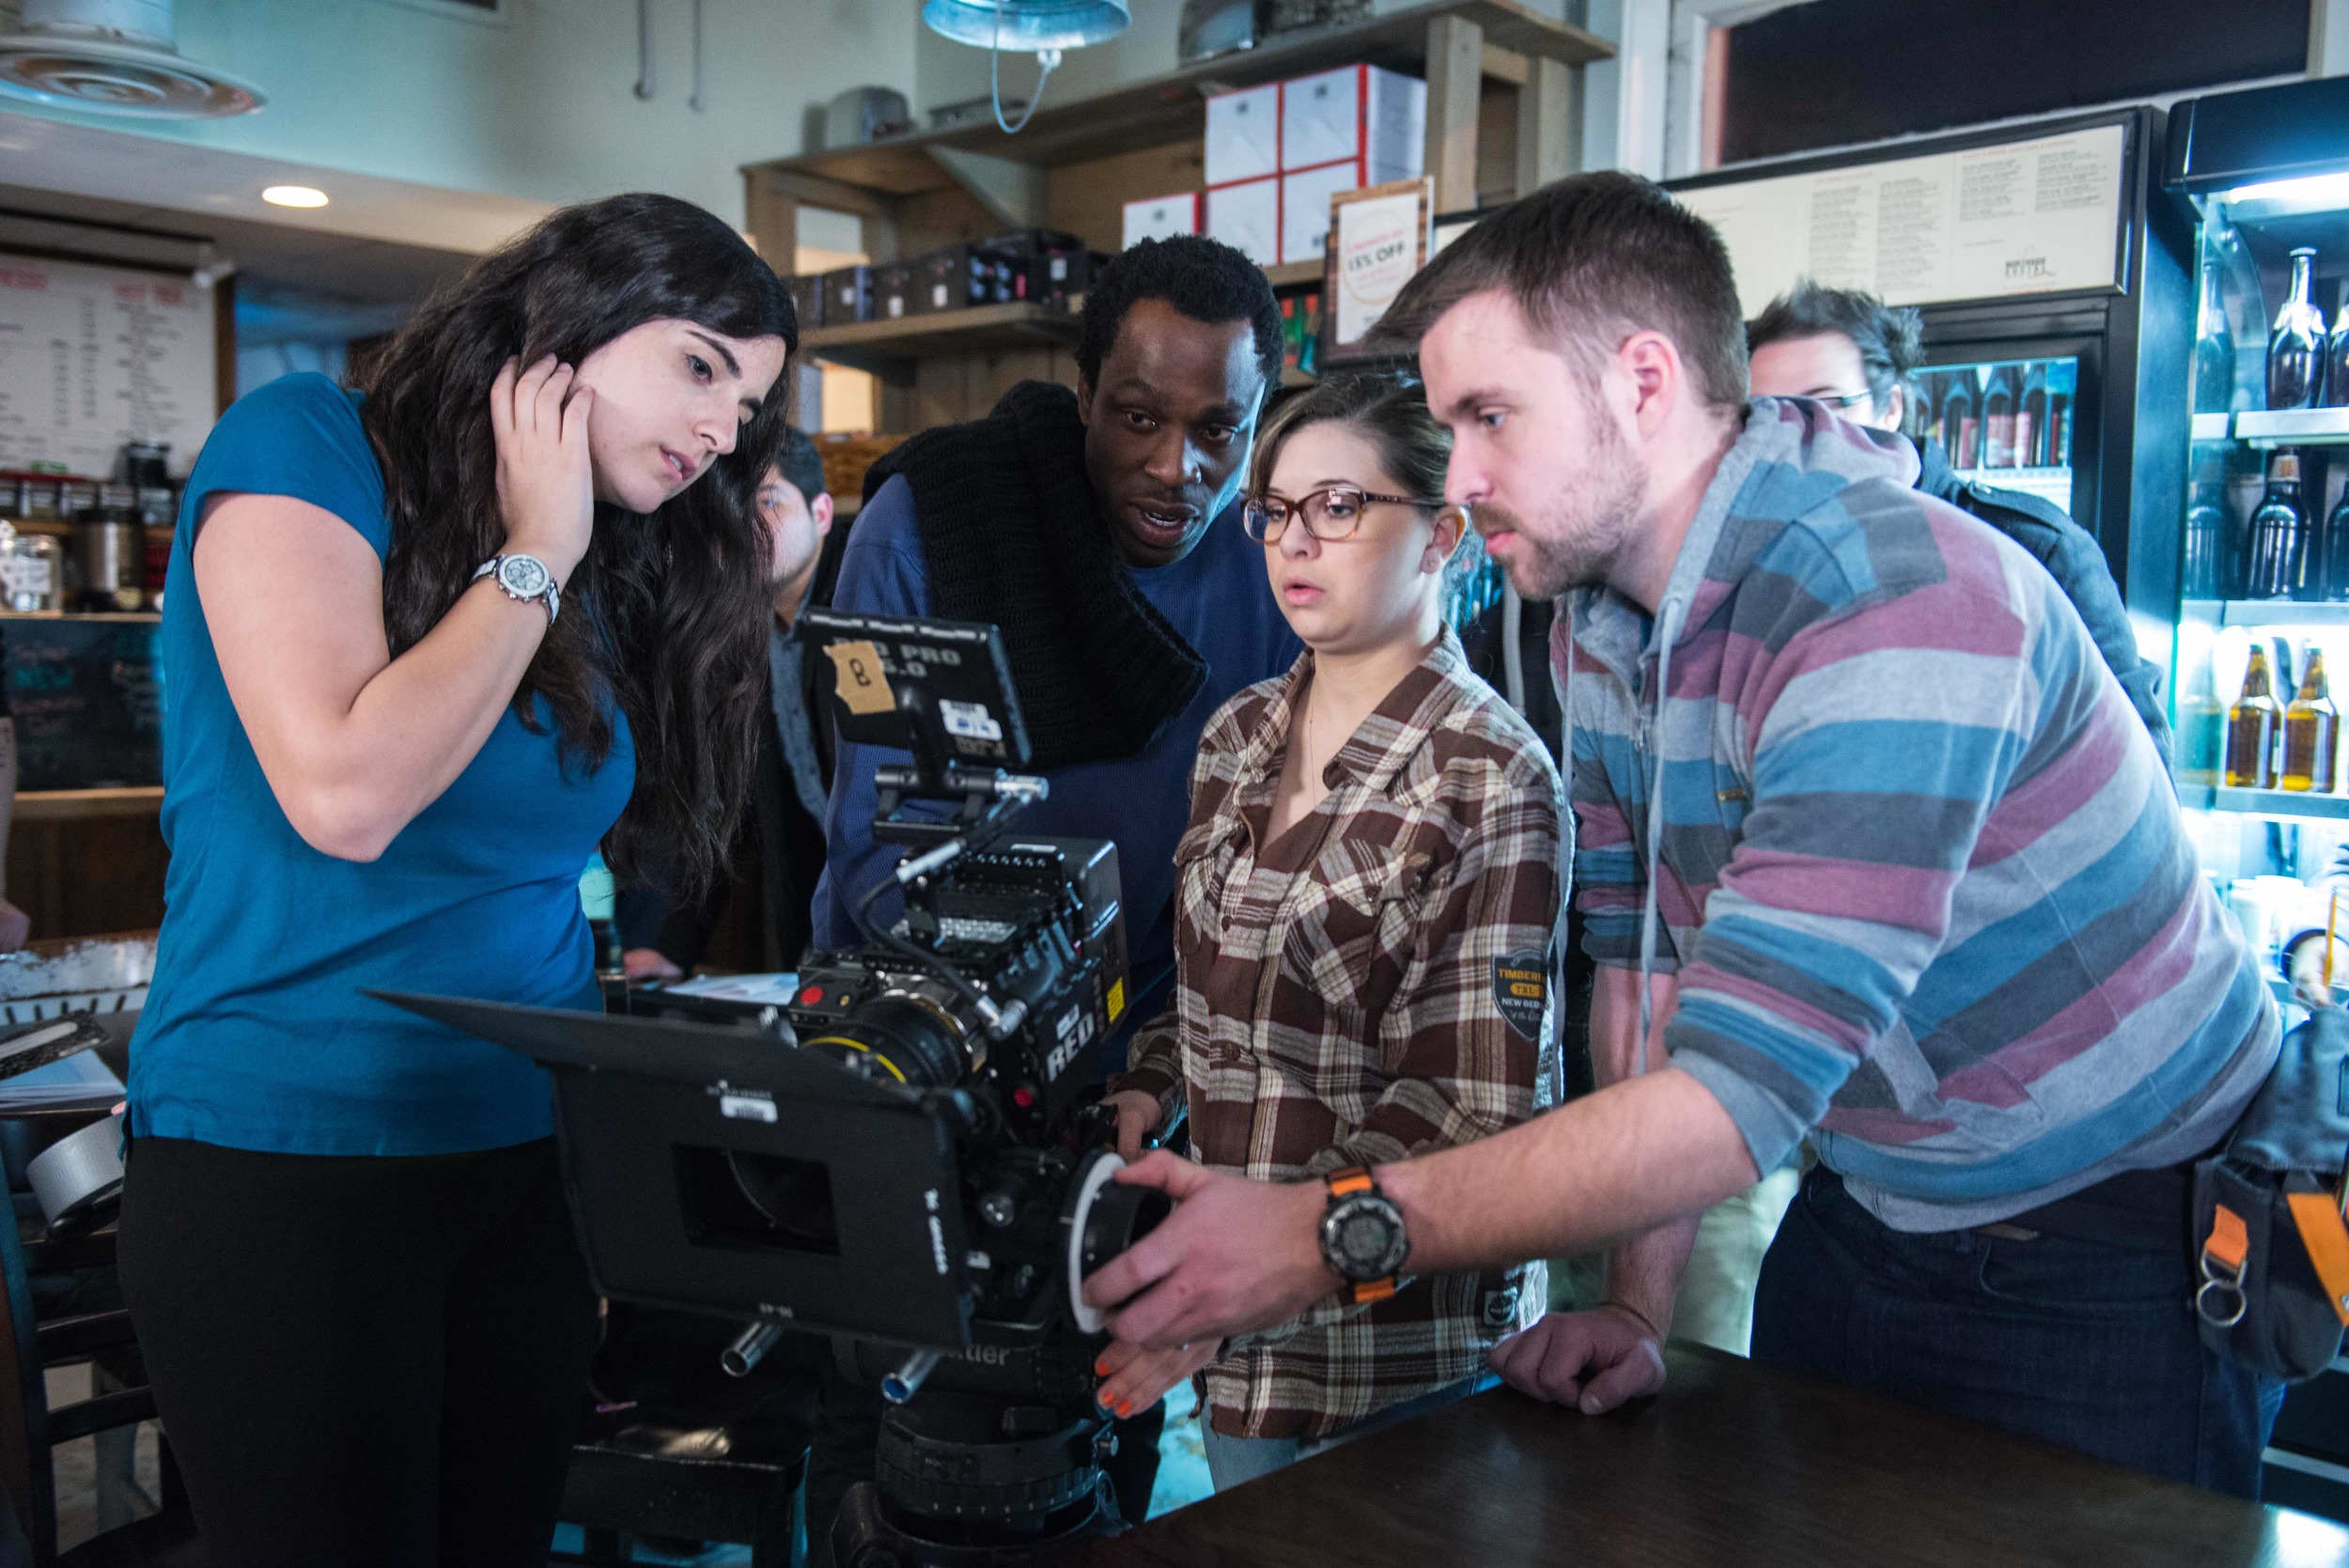 Cinematographer Hans Charles and his camera team, Film and Video Studies students in Cinematography. Image Dixie D. Vereen.